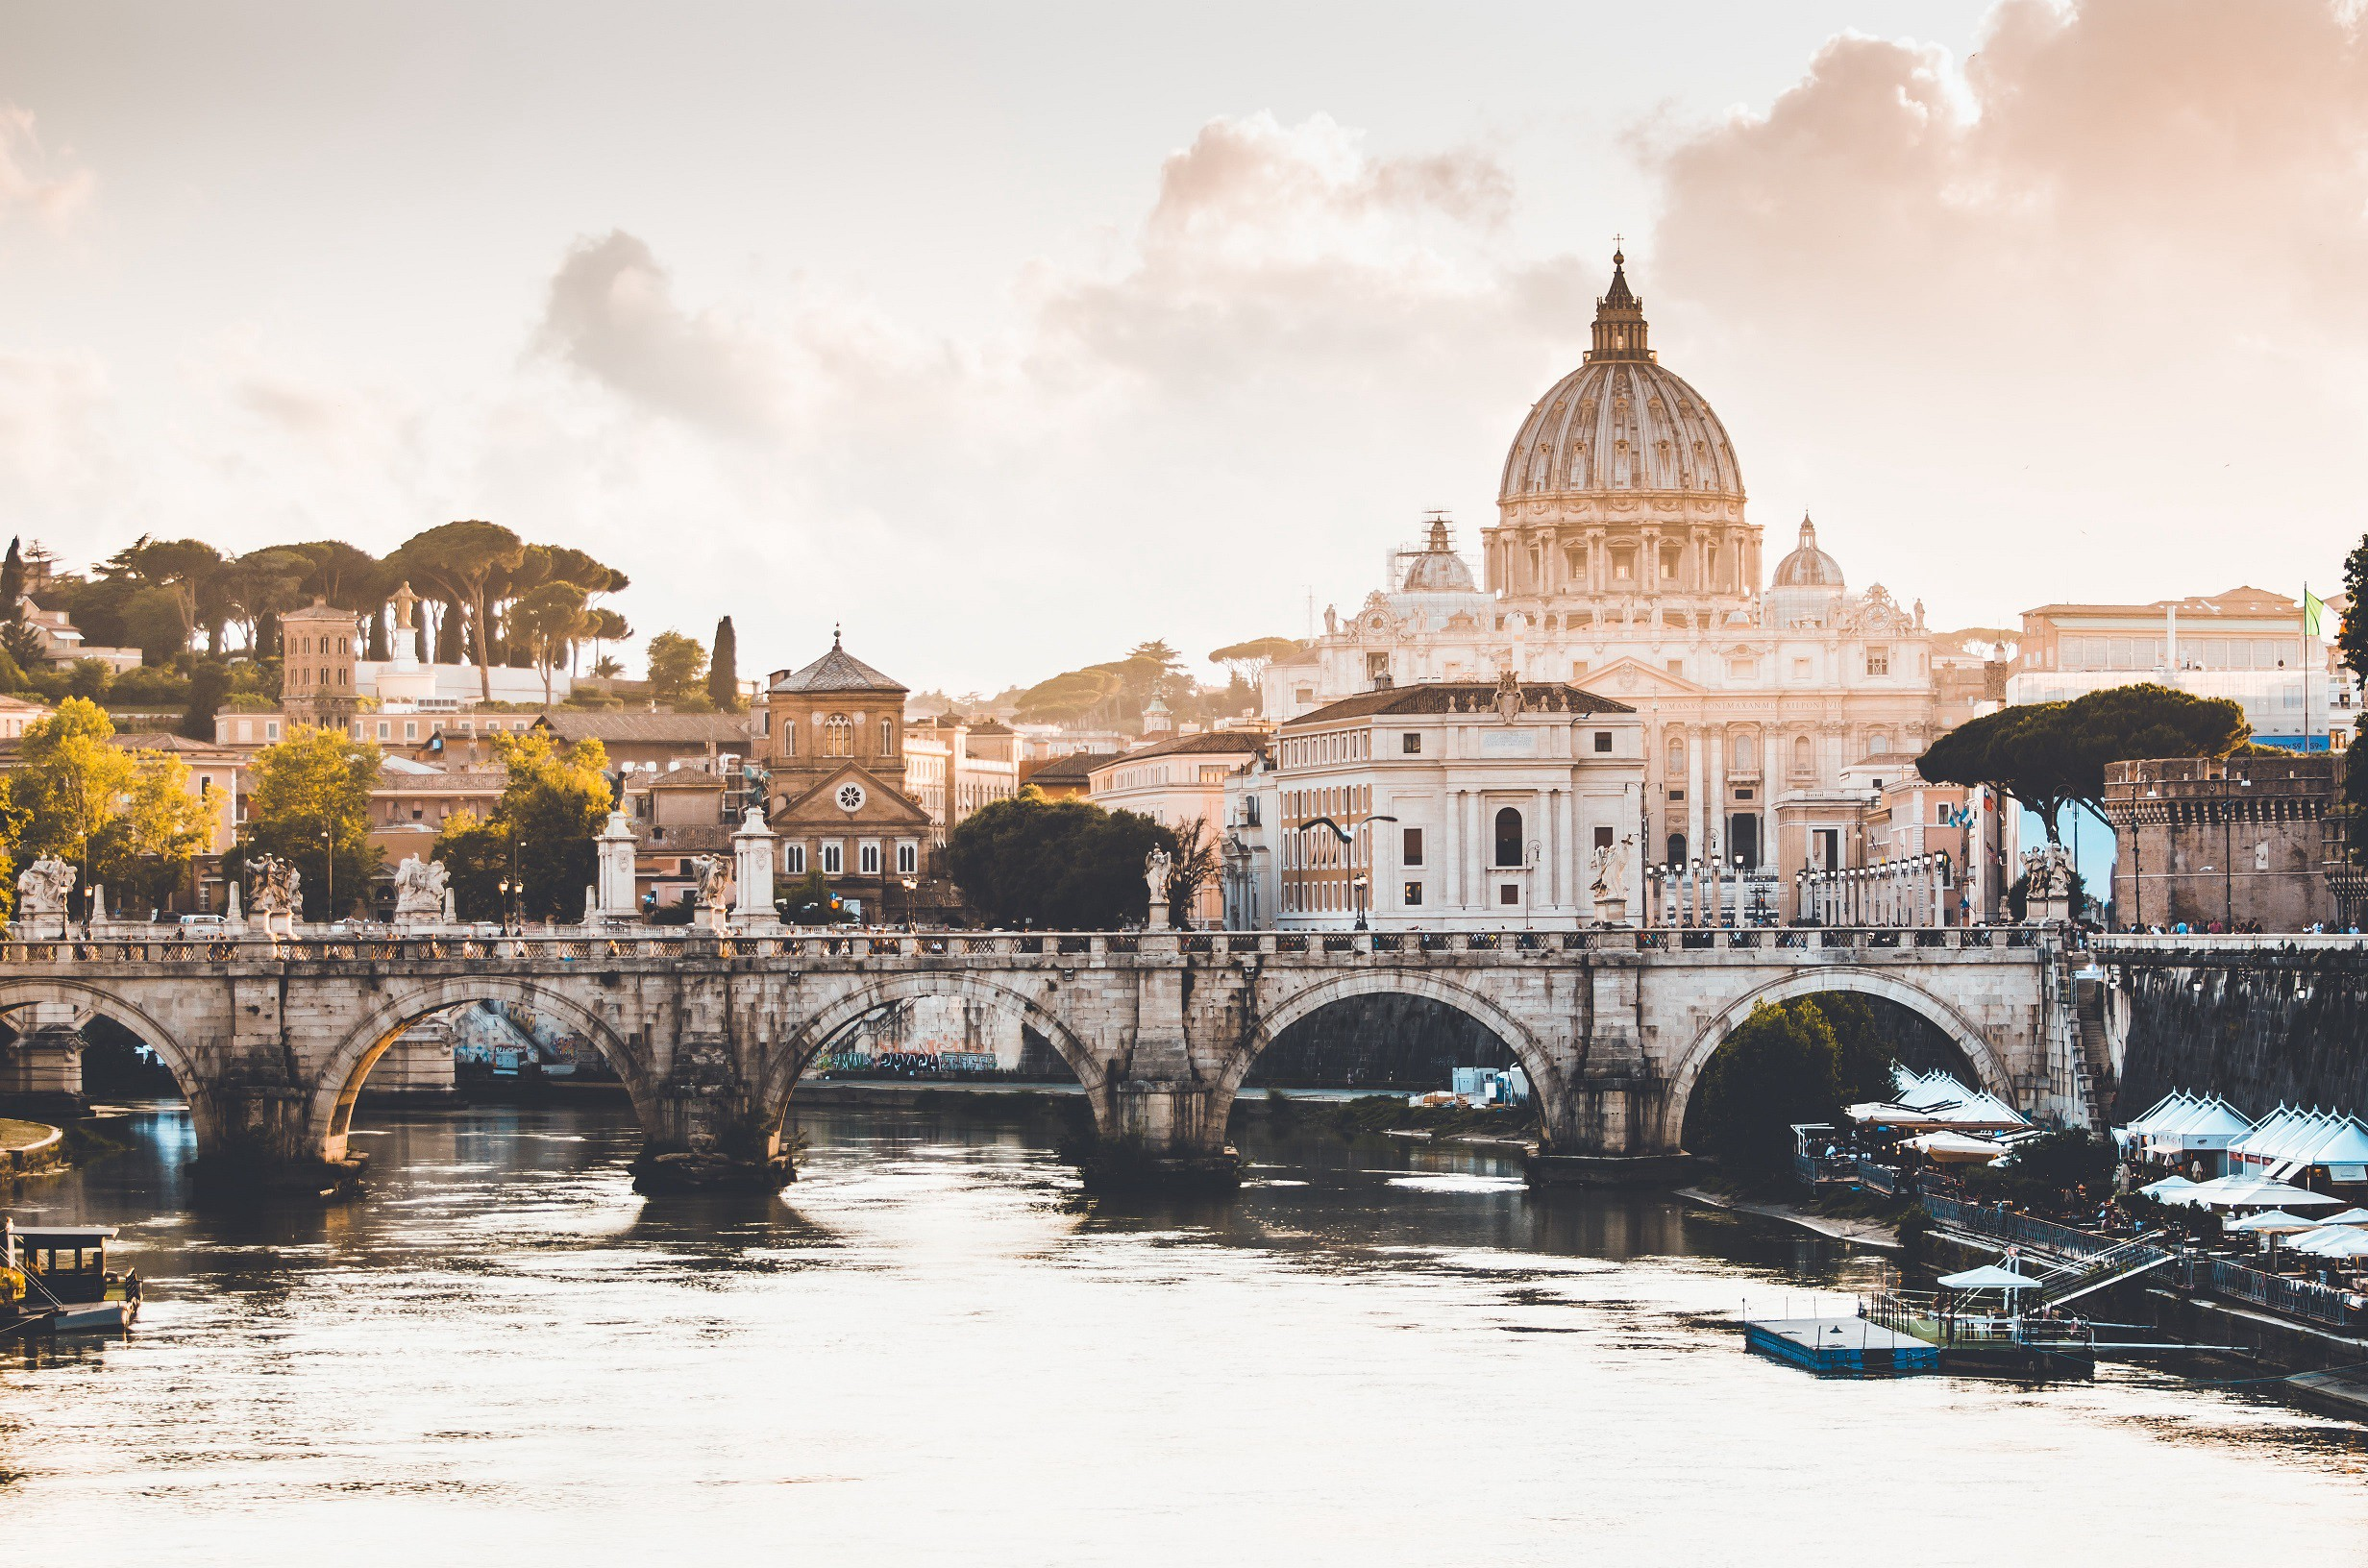 The Tiber river and Saint Peter's Basilica in Rome